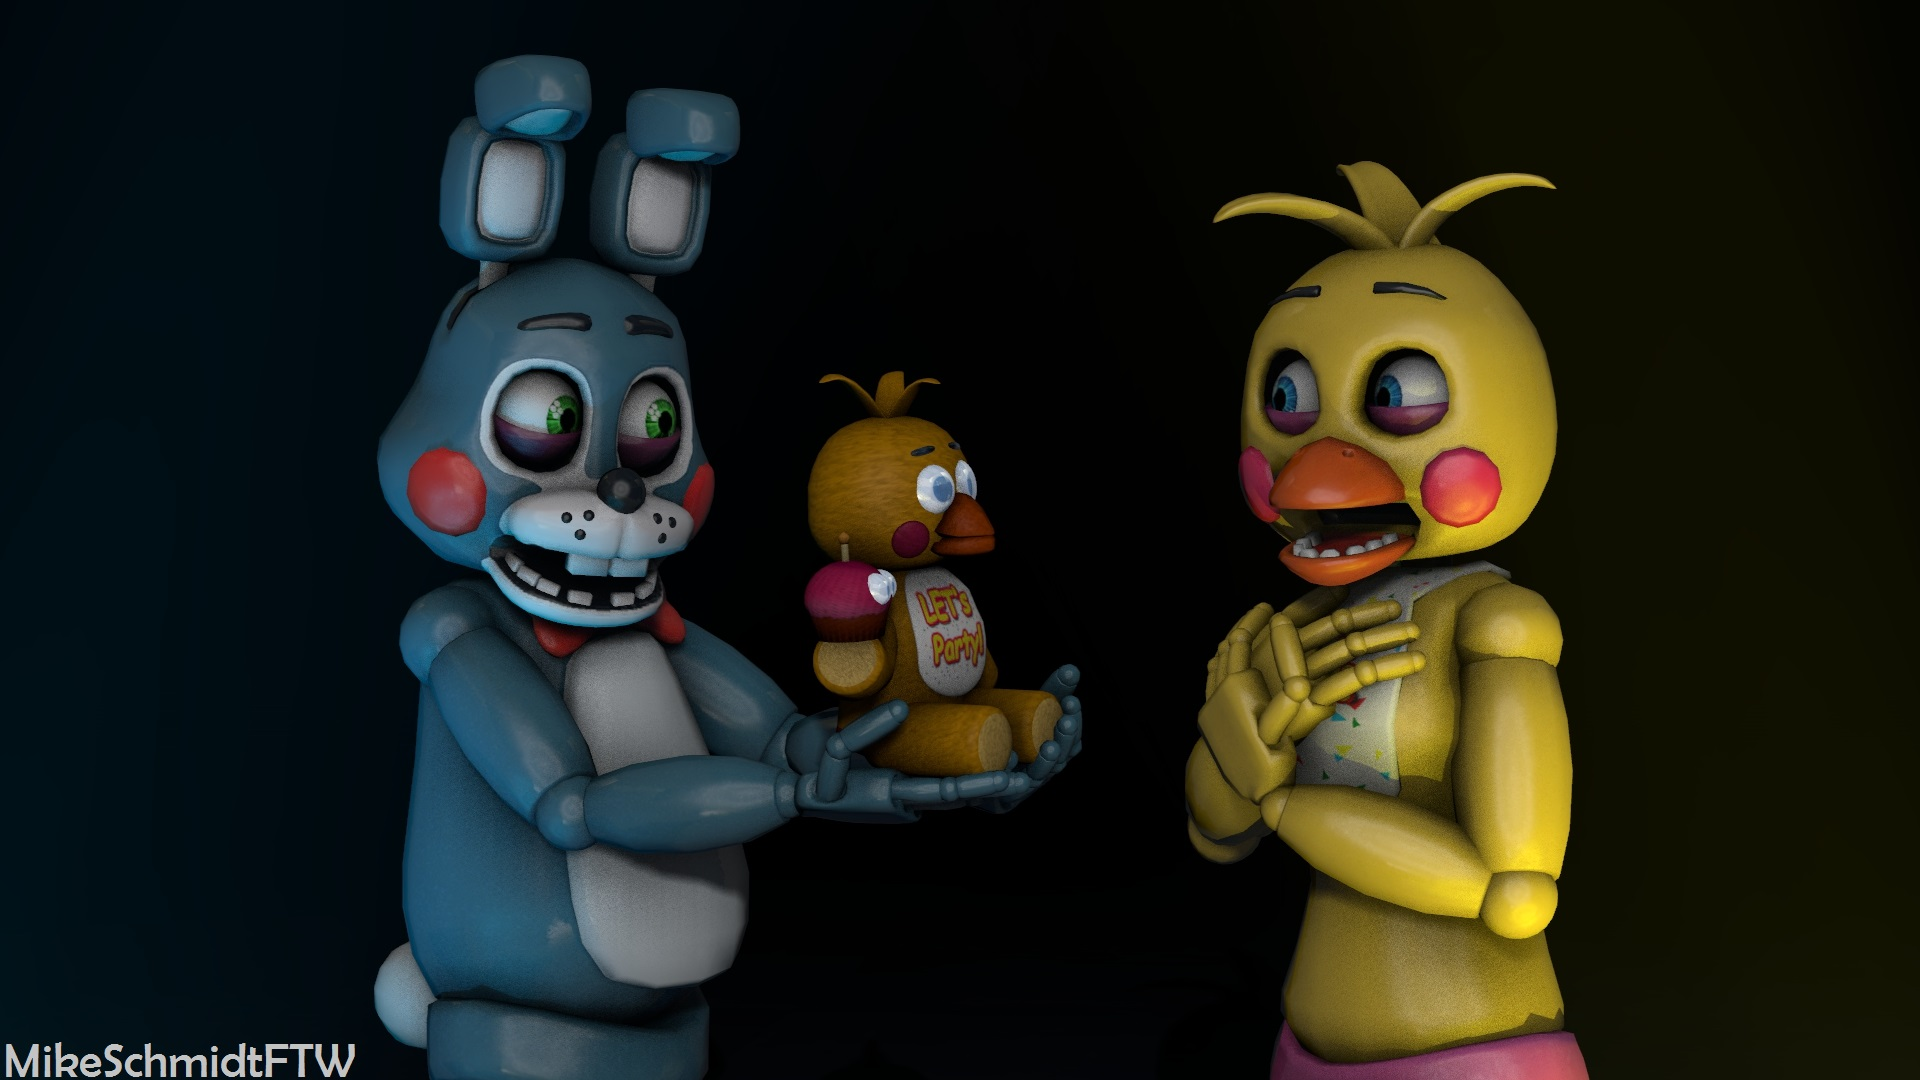 Toy Bonnie And Toy Chica By Officerschmidtftw On Deviantart